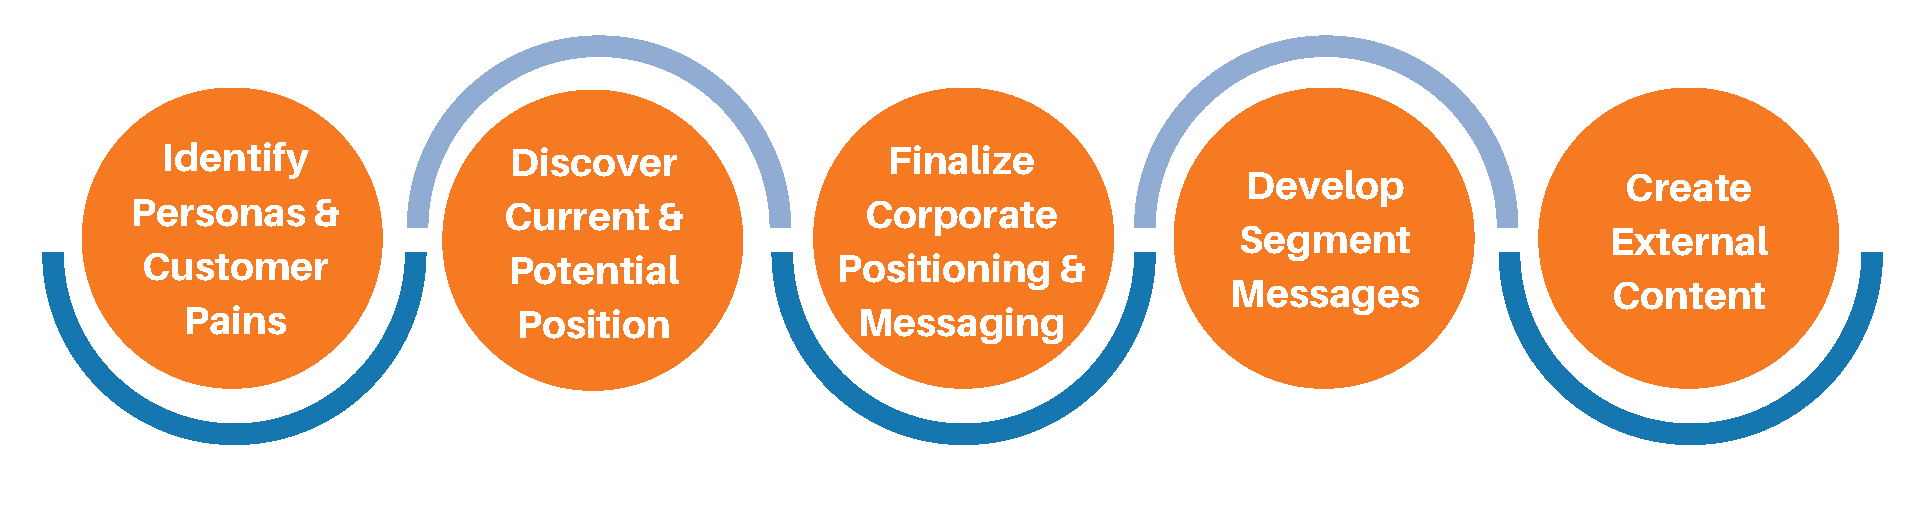 brand positioning and messaging process